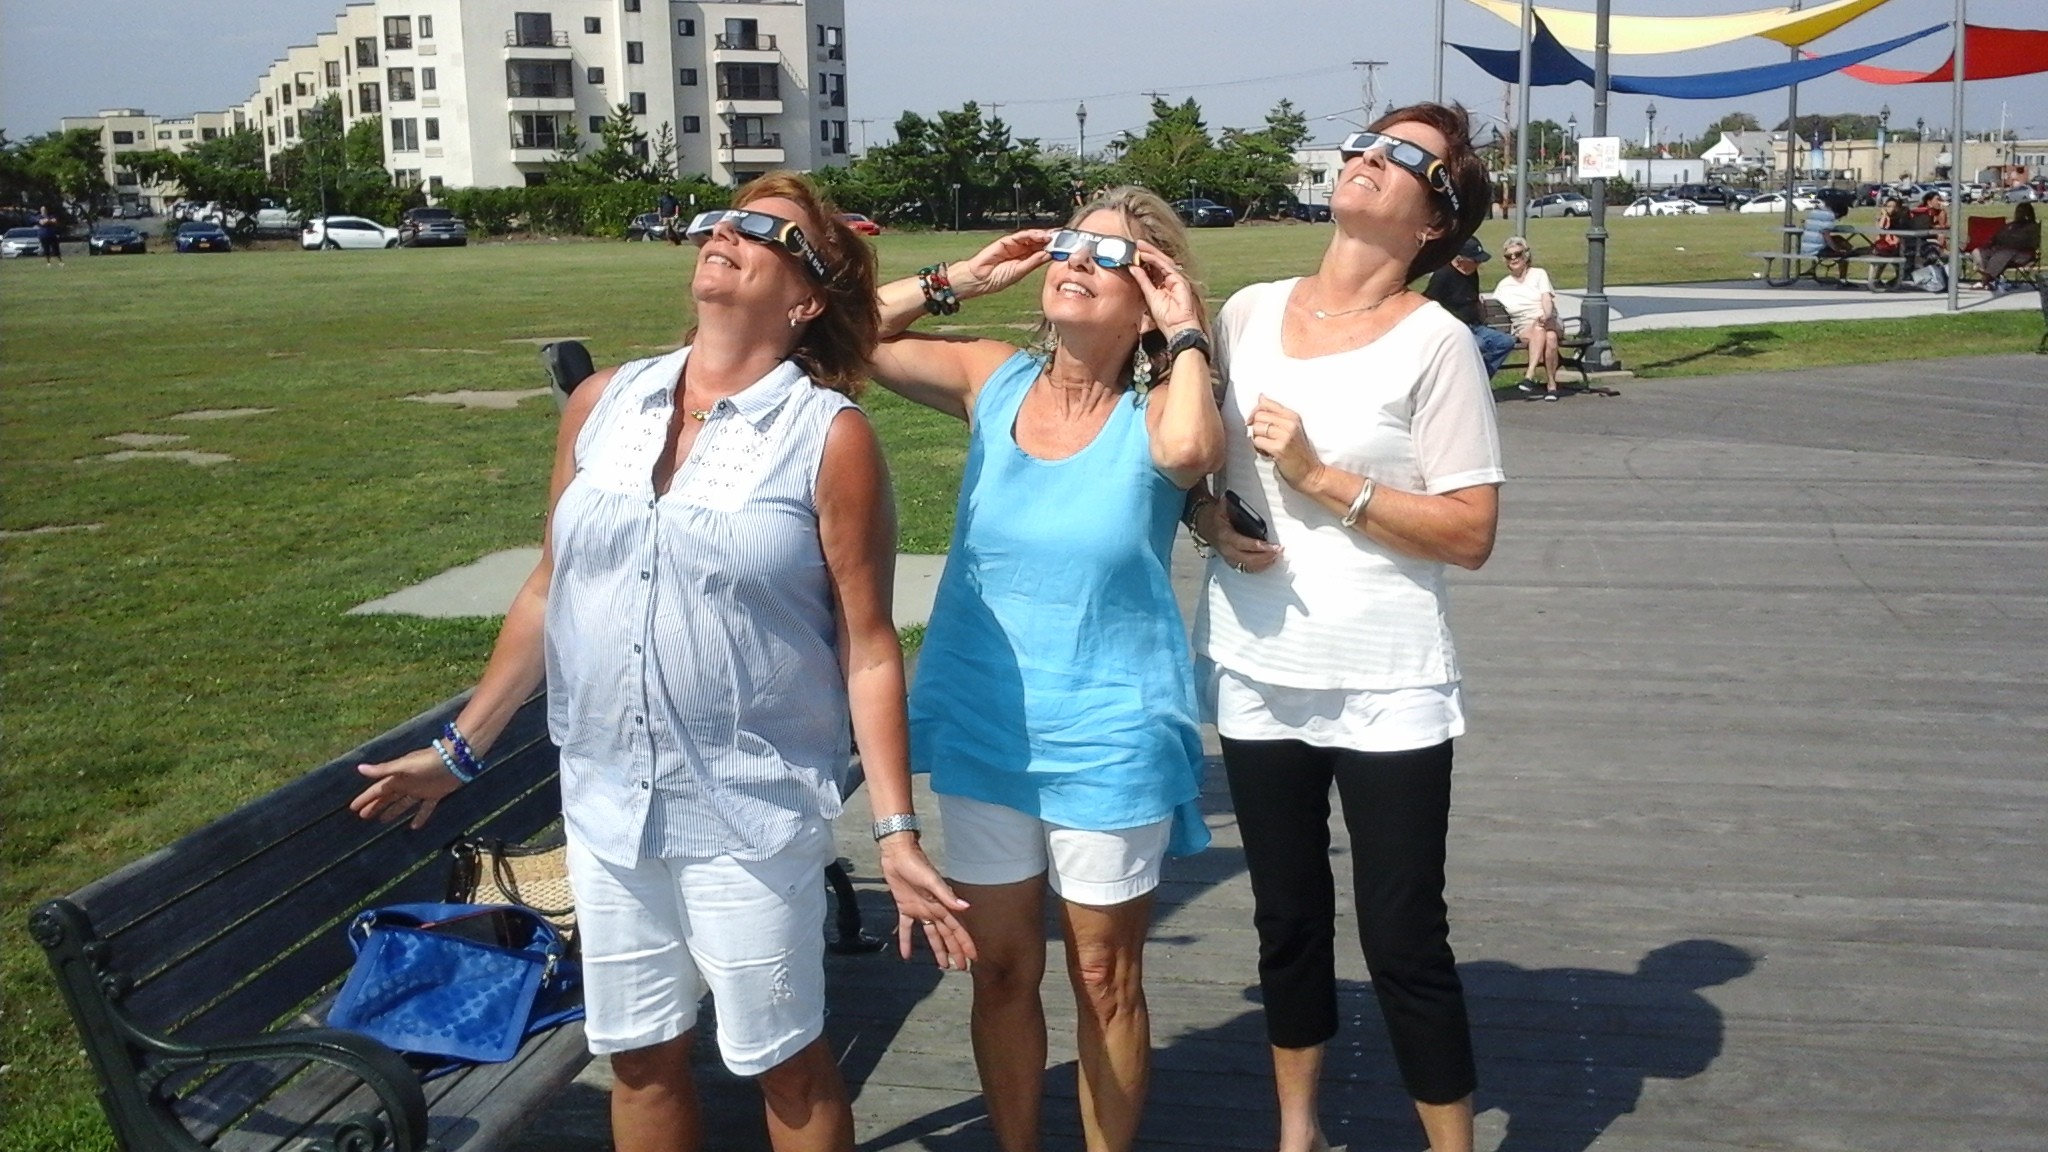 After having lunch at Rachel's on the Nautical Mile, friends Mary Wolfson, far left, Marianne Wiser and Gail Eisenberg watched from Seabreeze Park.